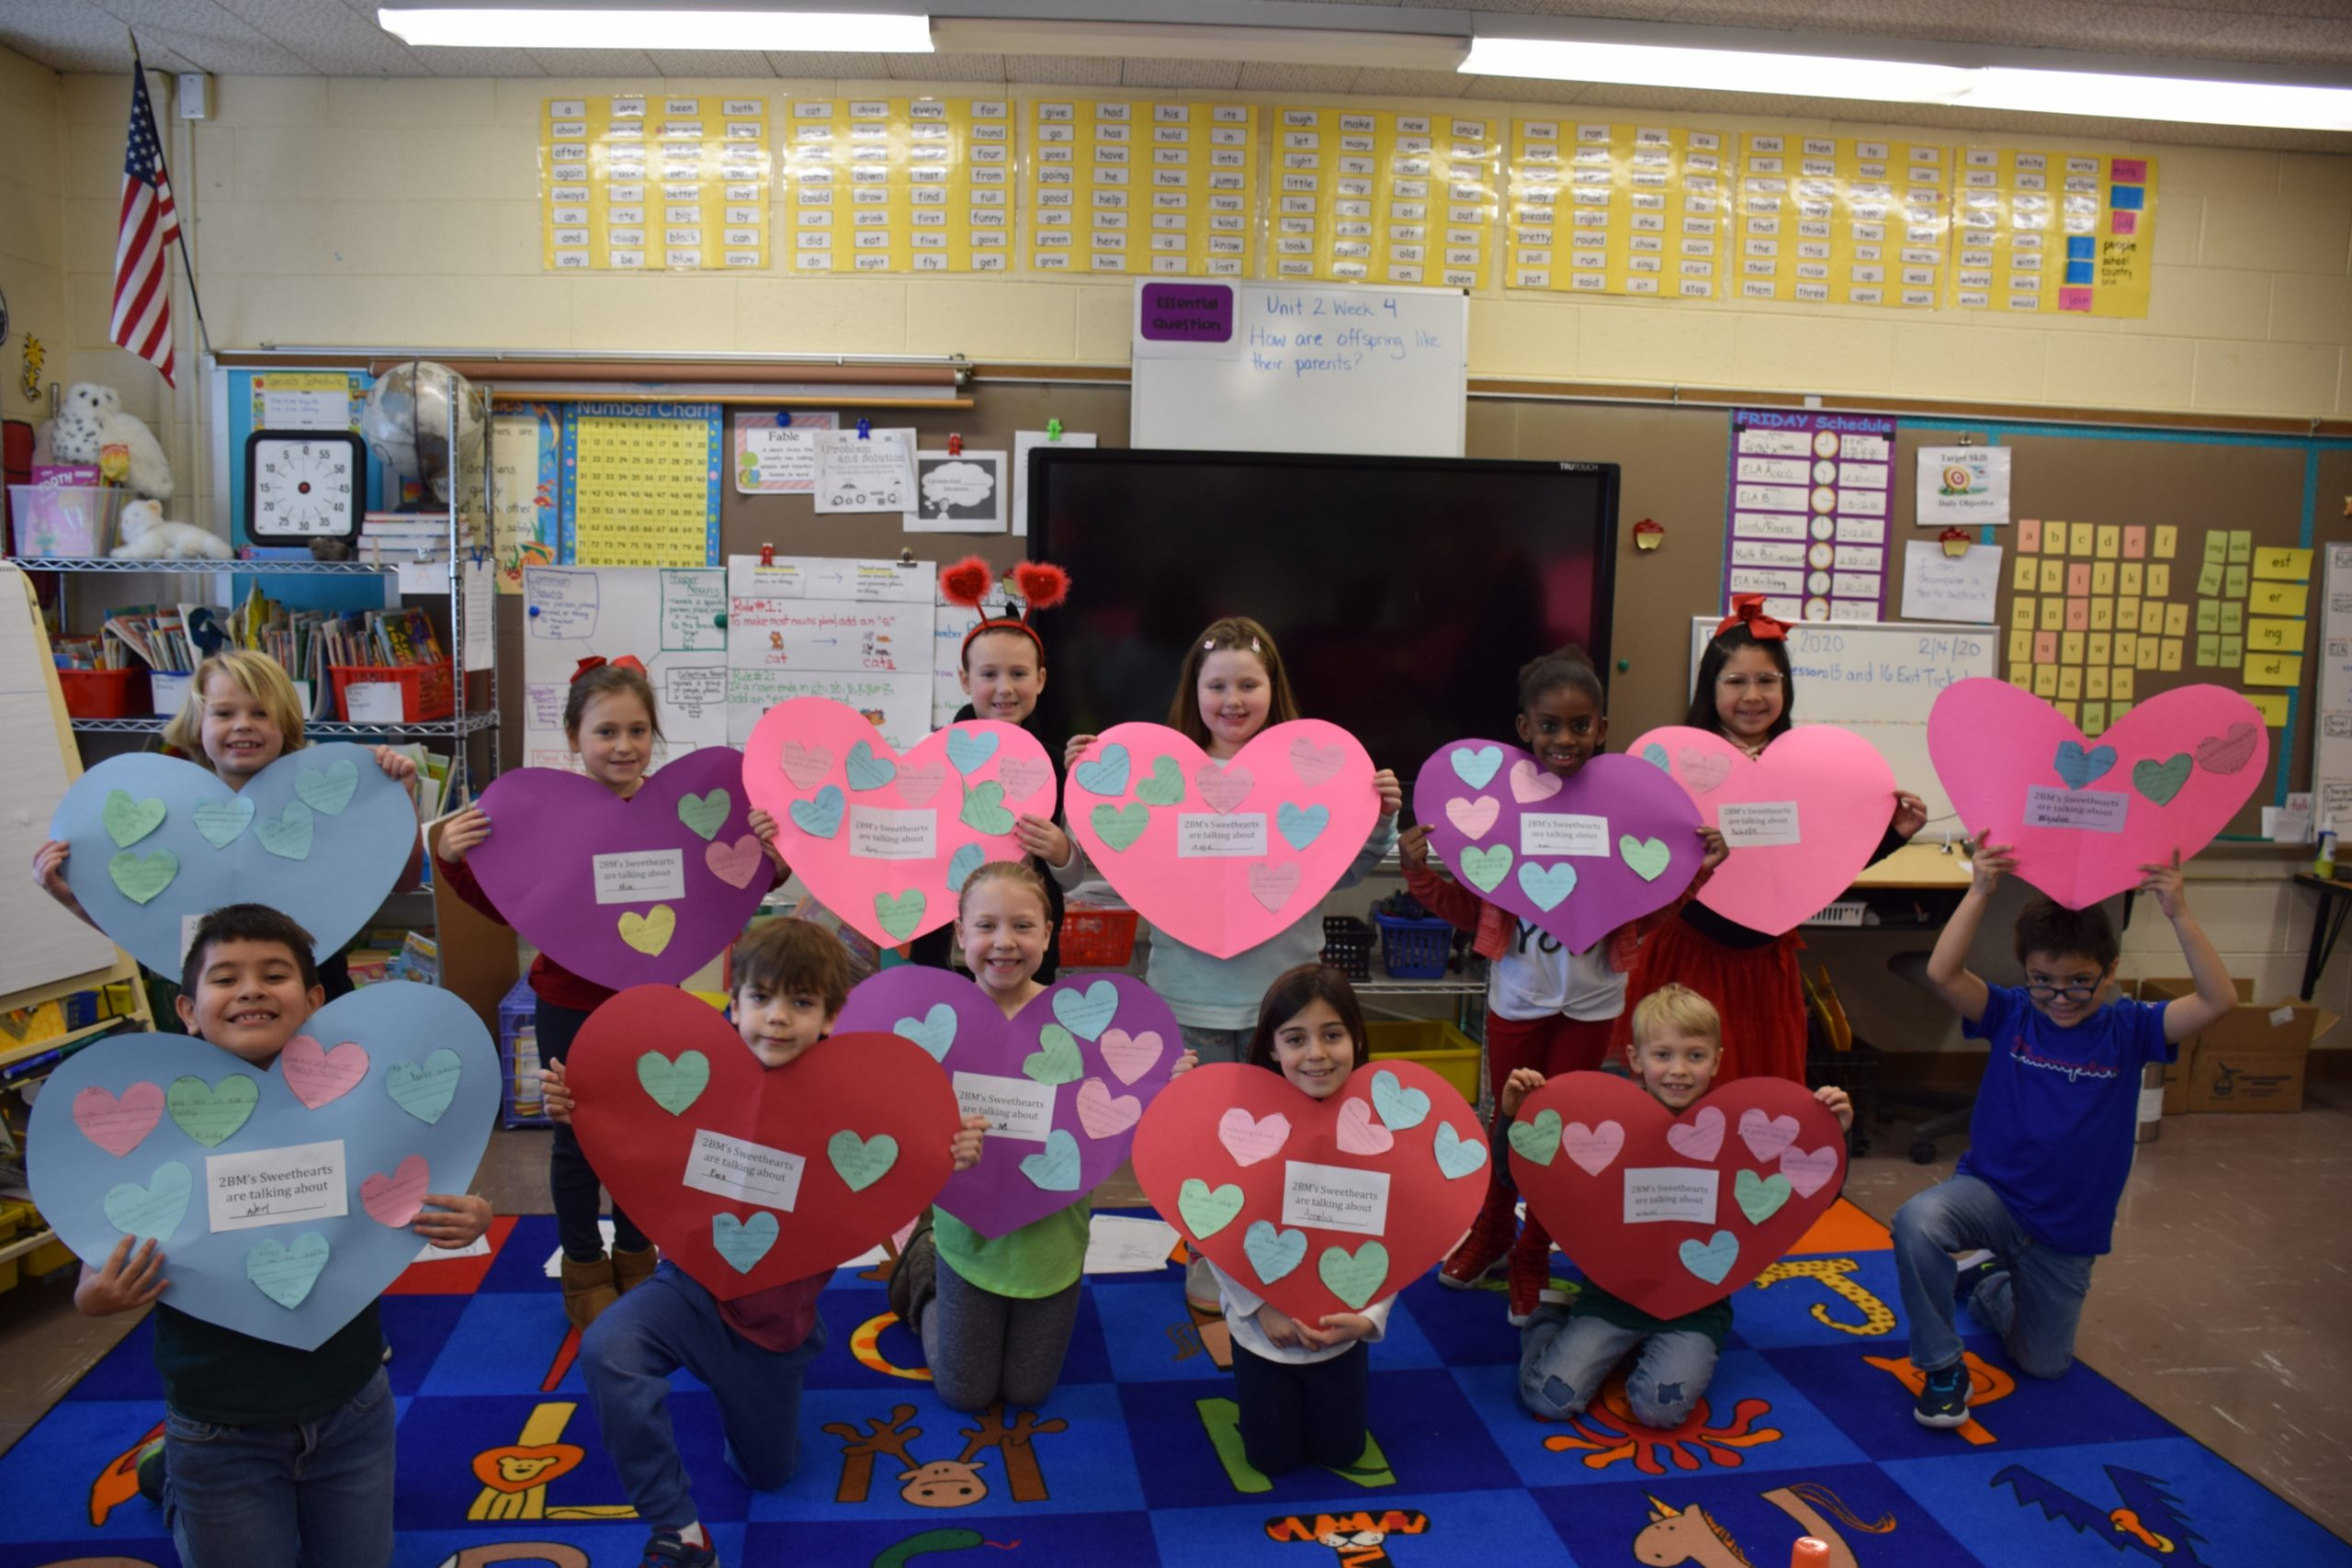 """Westhampton Beach Elementary School students were full of kind words on Valentine's Day as they completed a variety of educational projects. They made giant hearts filled with compliments to give to their classmates, designed Valentine's Day cards and, at the kindergarten level, worked on their writing skills by drawing on hearts using the """"at"""" word family, such as cat, bat, sat, and sight words."""